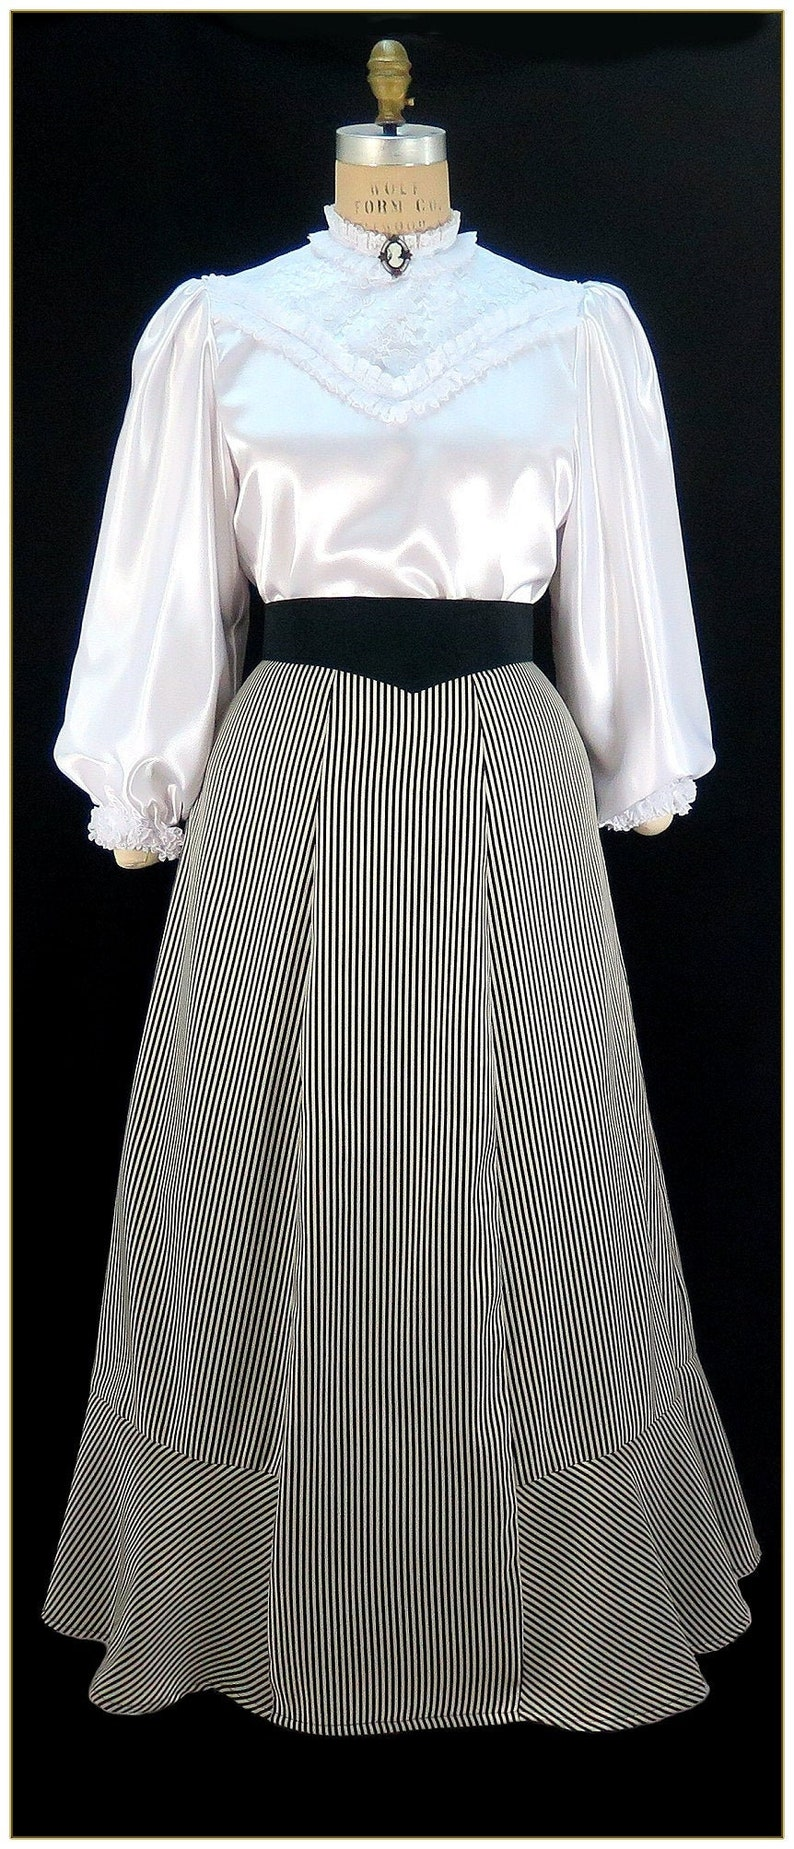 1890s-1900s Fashion, Clothing, Costumes Victorian Black & White Stripe Peplum Skirt $98.00 AT vintagedancer.com